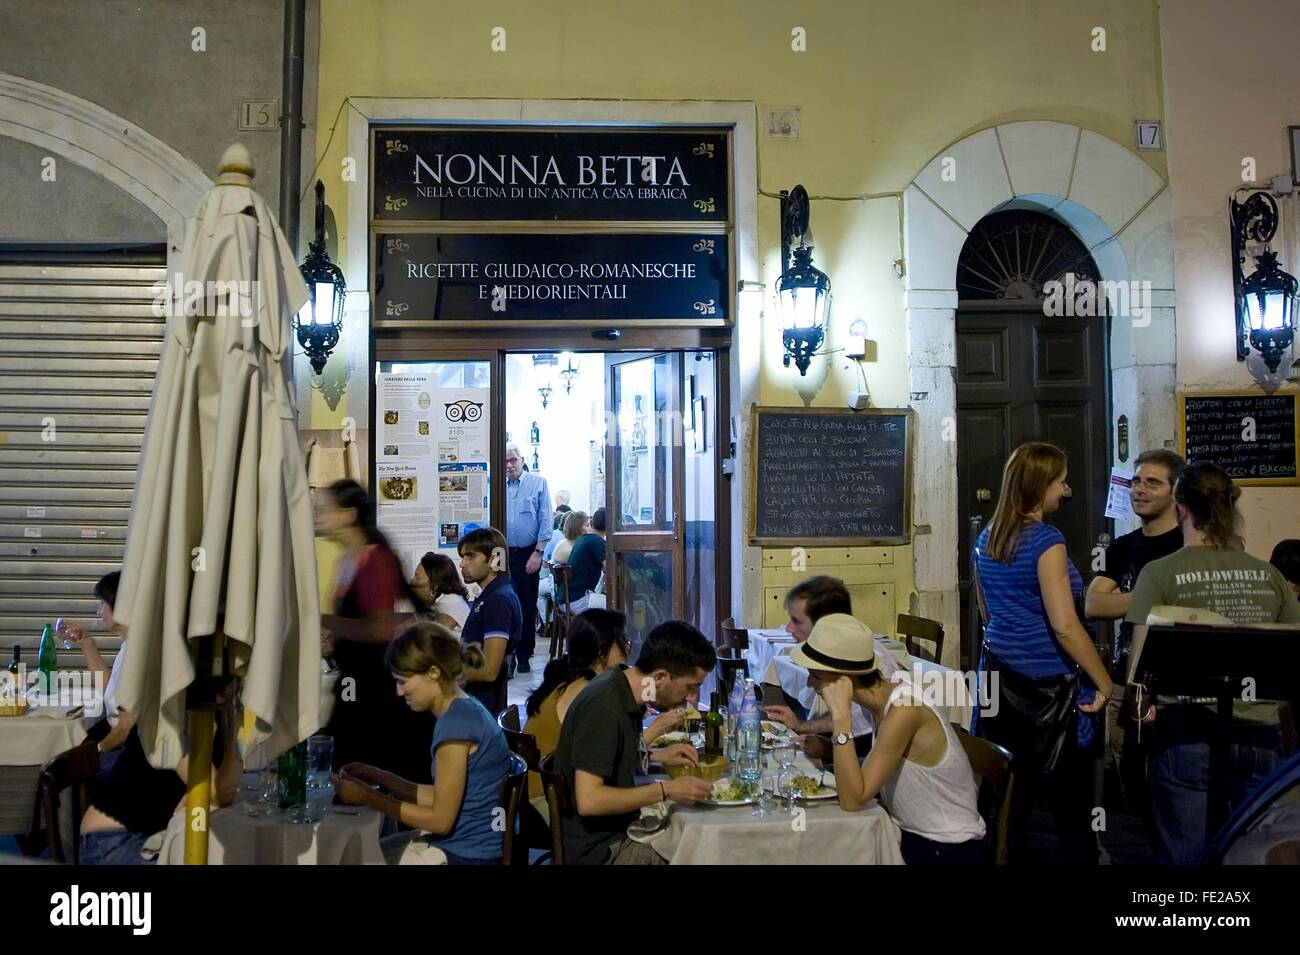 Ristorante Cucina Kosher Padova Movida Stock Photos Movida Stock Images Alamy